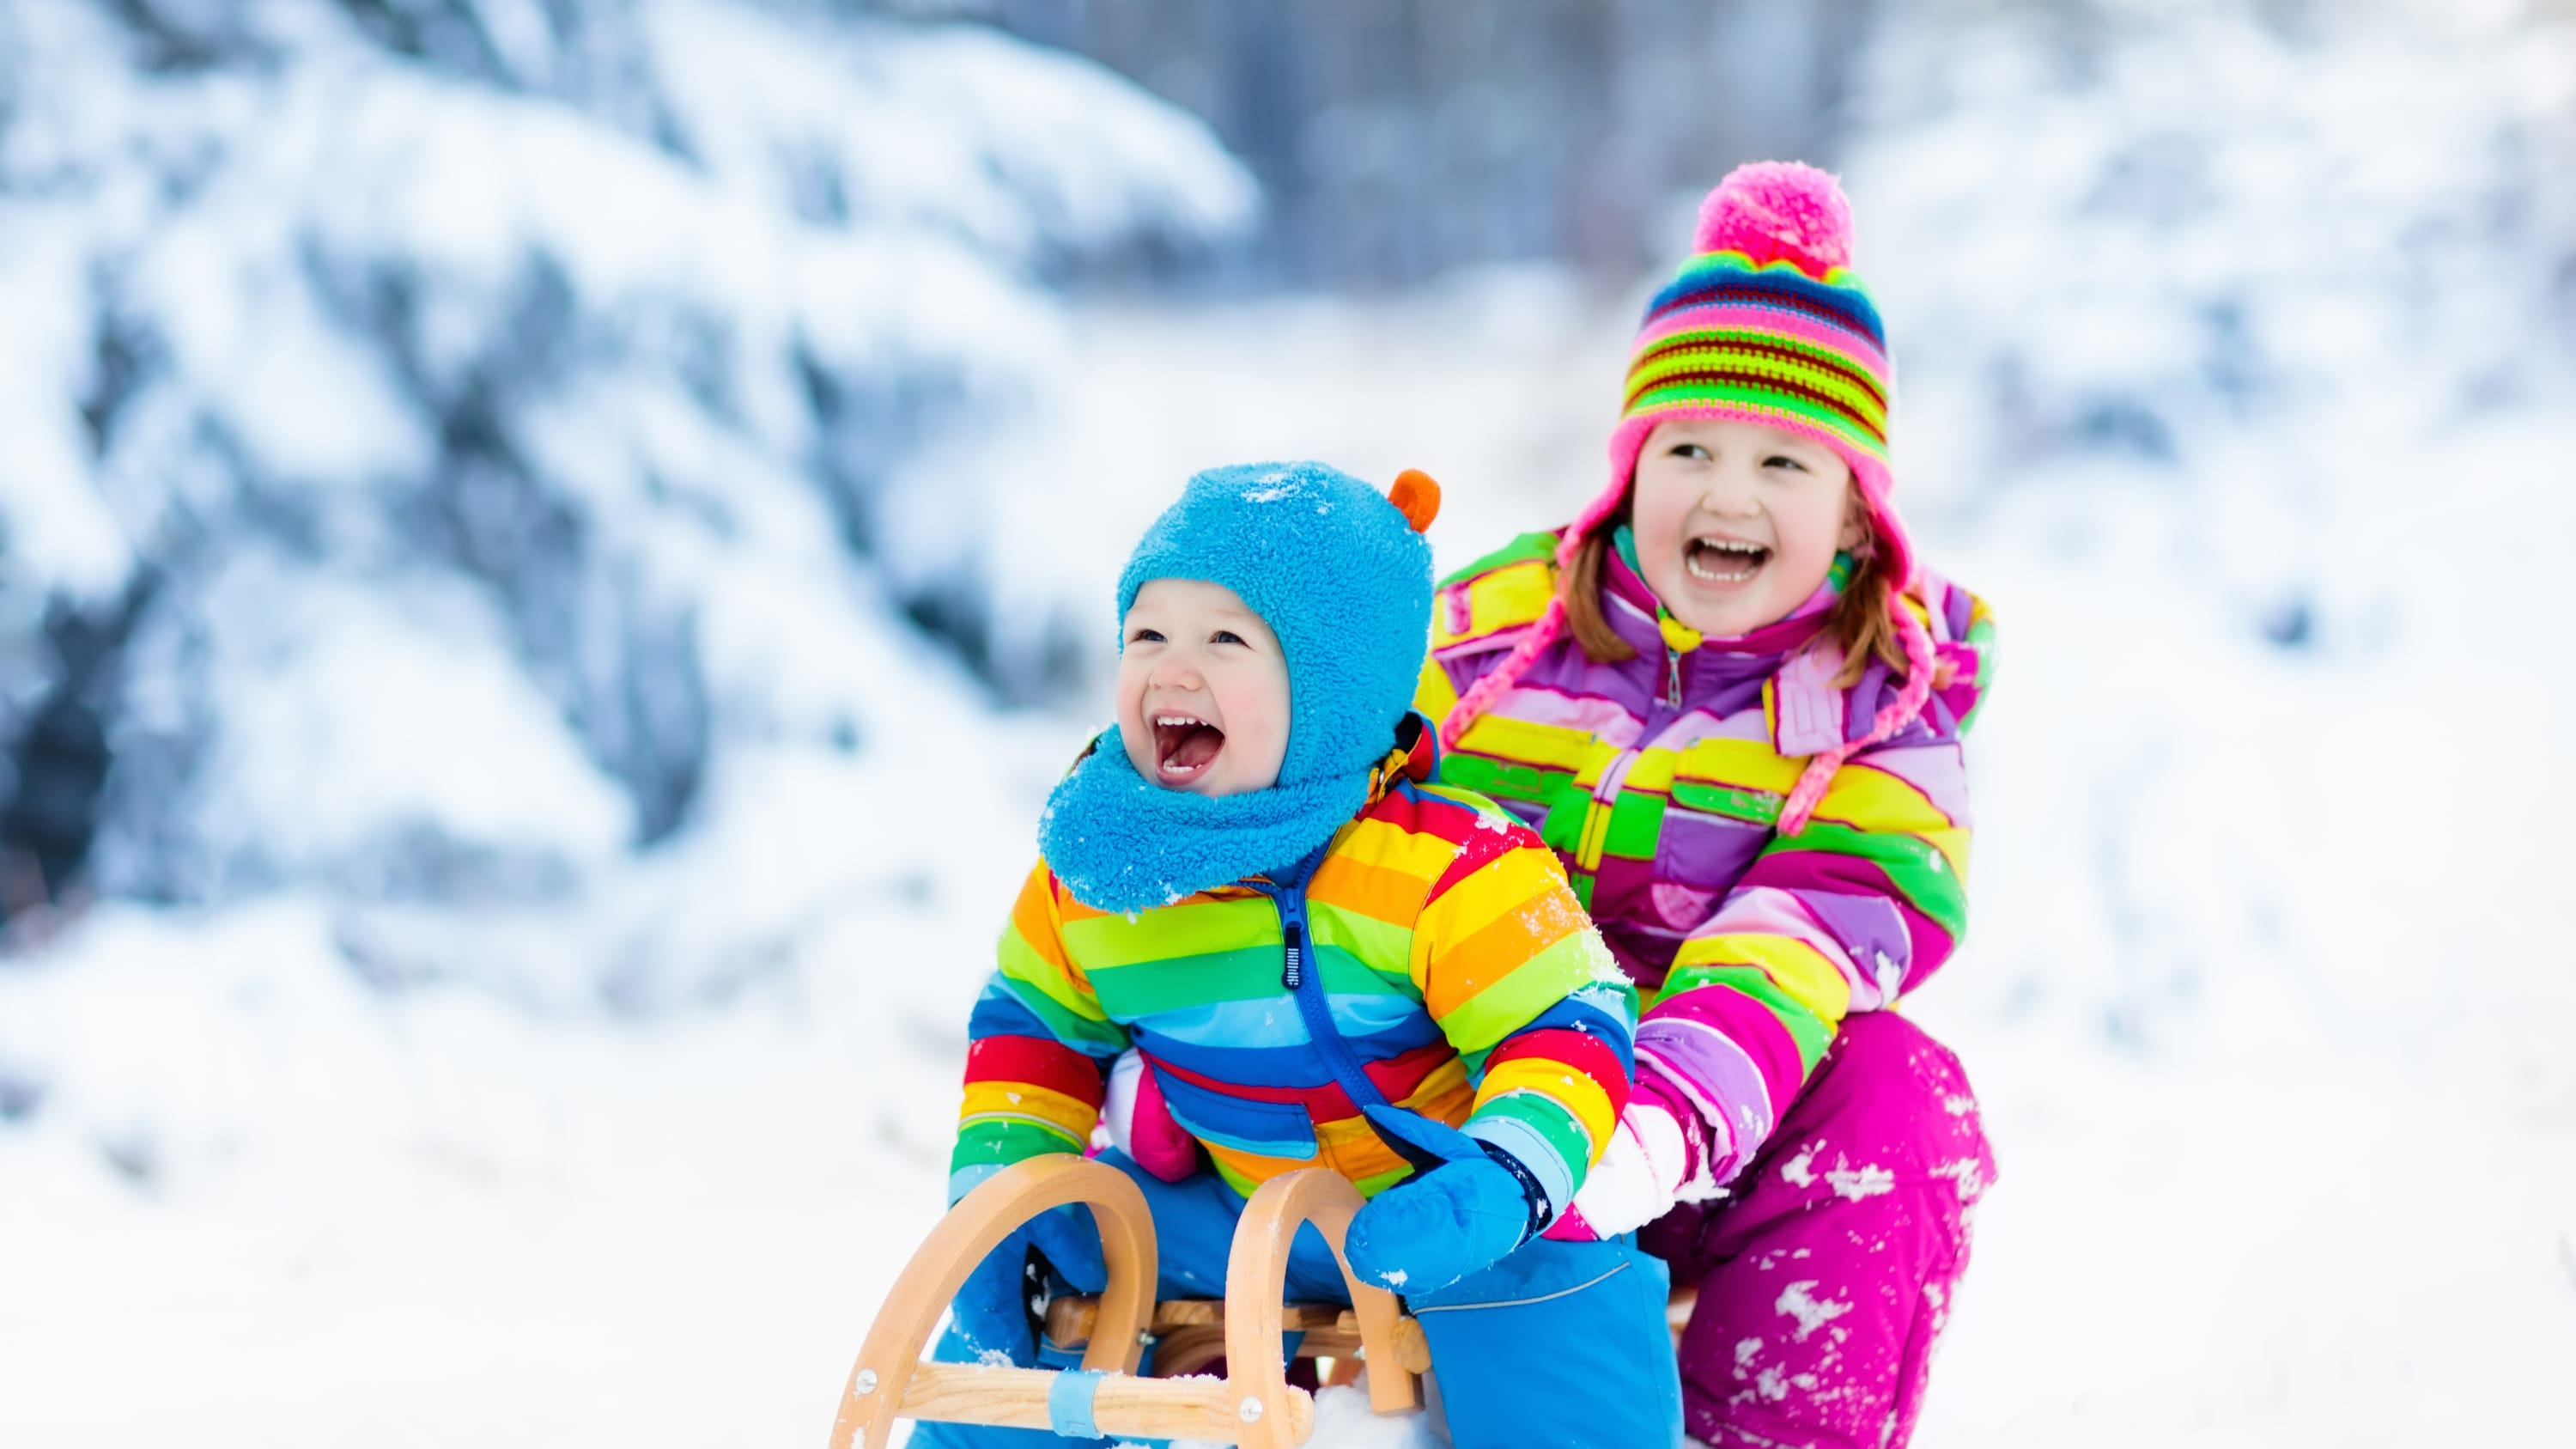 Two children are sledding while wearing colorful outerwear.